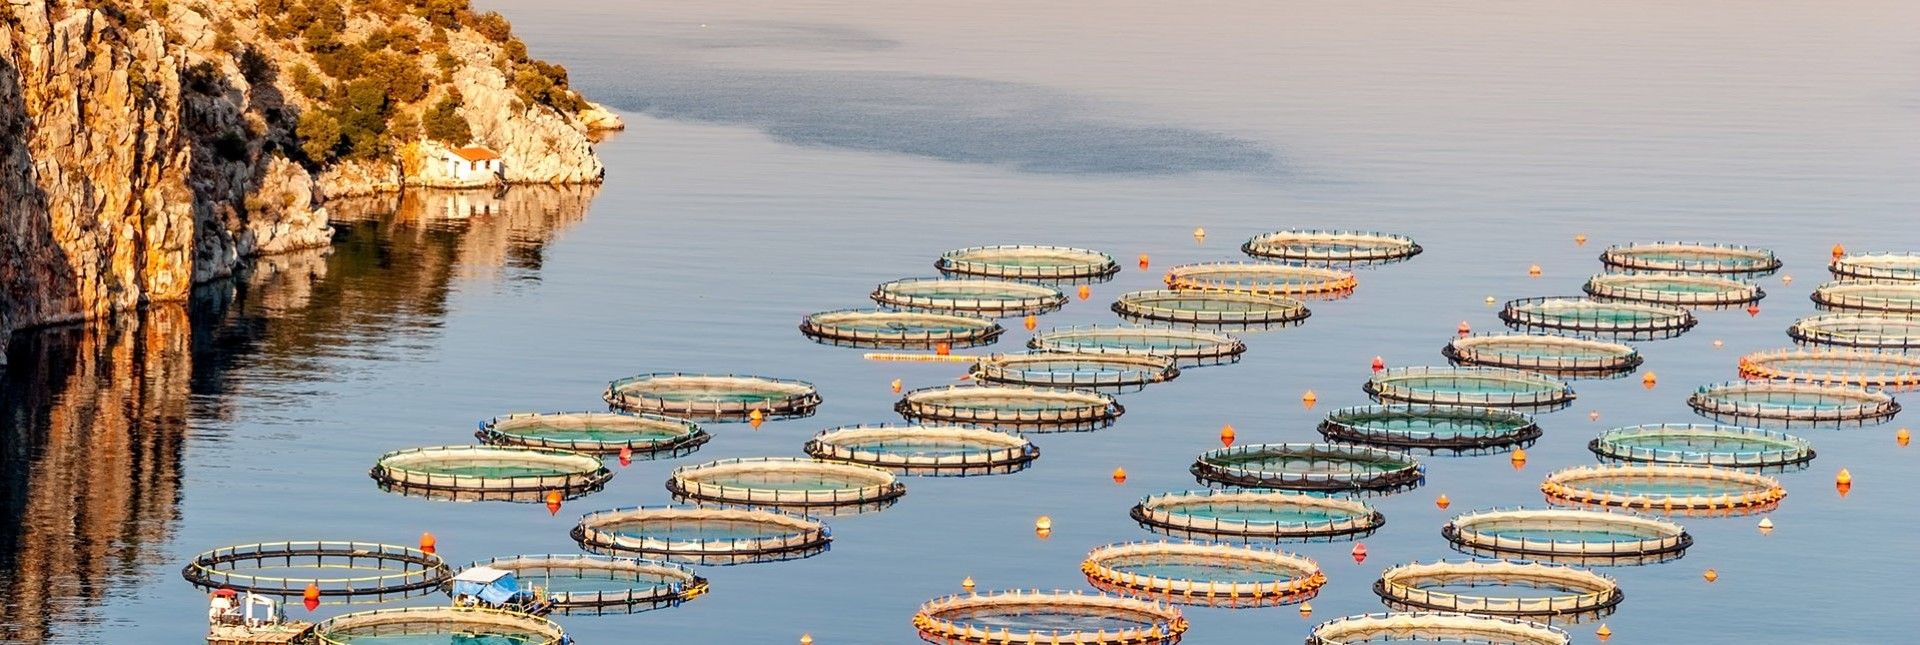 Farmed Fish | The ASC Certification Label | Buying Sustainable Aquaculture